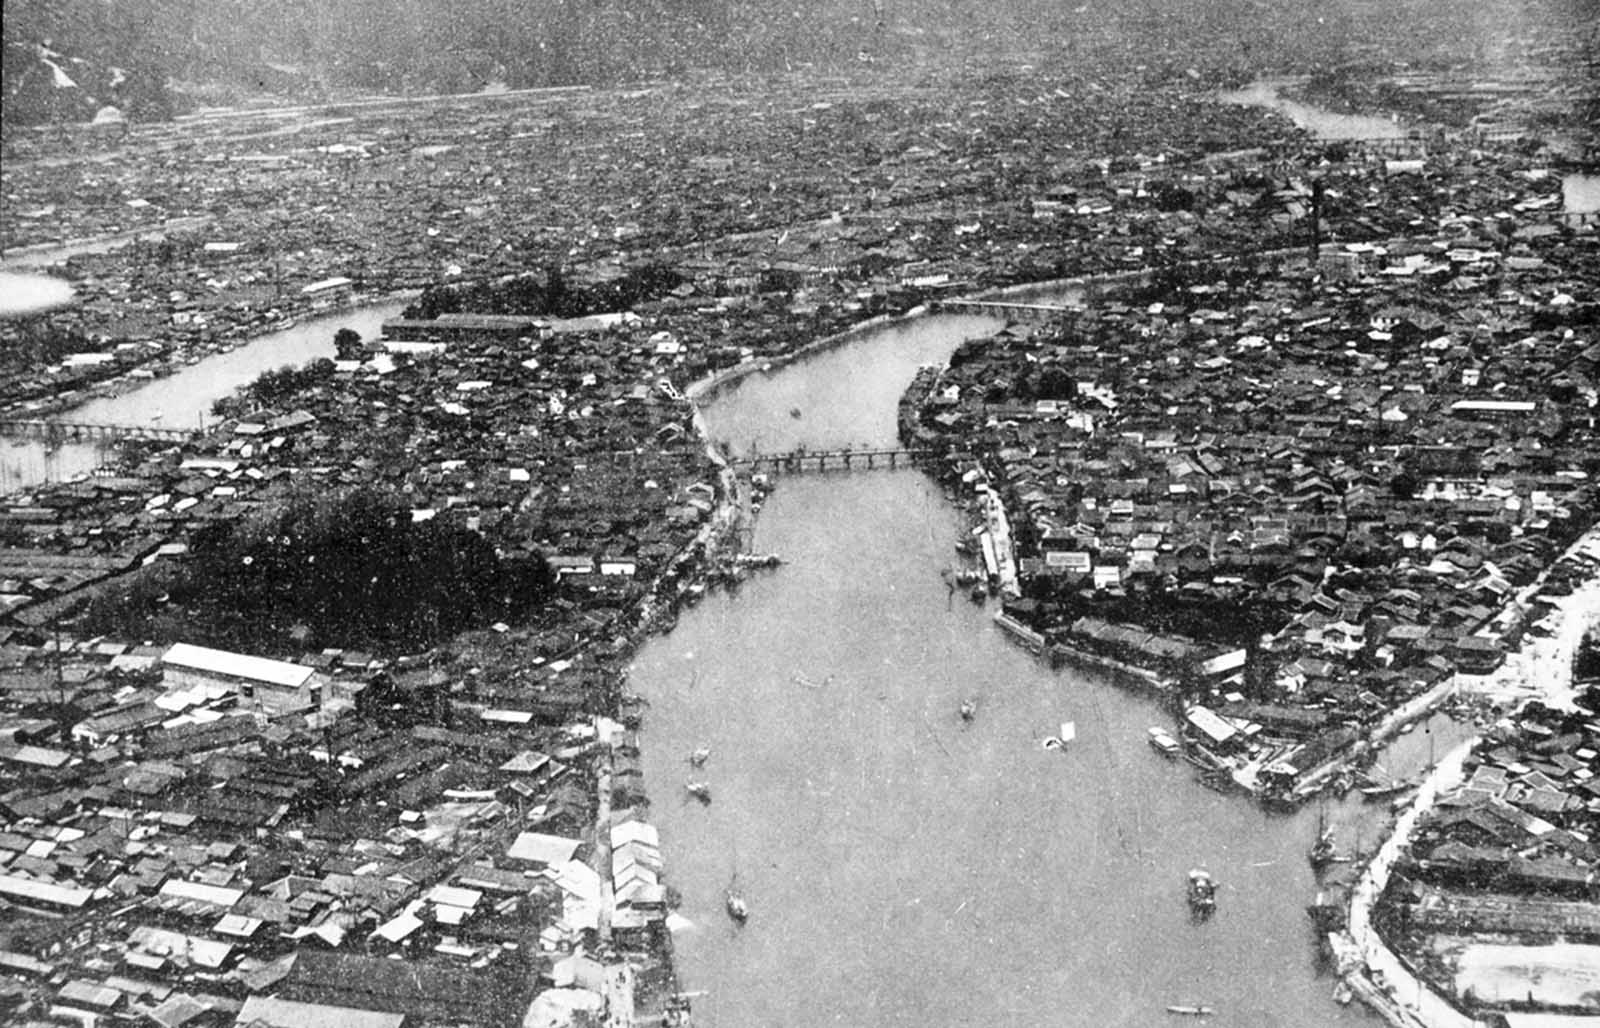 Aerial view of the densely built-up area of Hiroshima along the Motoyasugawa, looking upstream. Except for the very heavy masonry structures, the entire area was devastated. Ground zero of the atomic bomb was upper right in the photo.